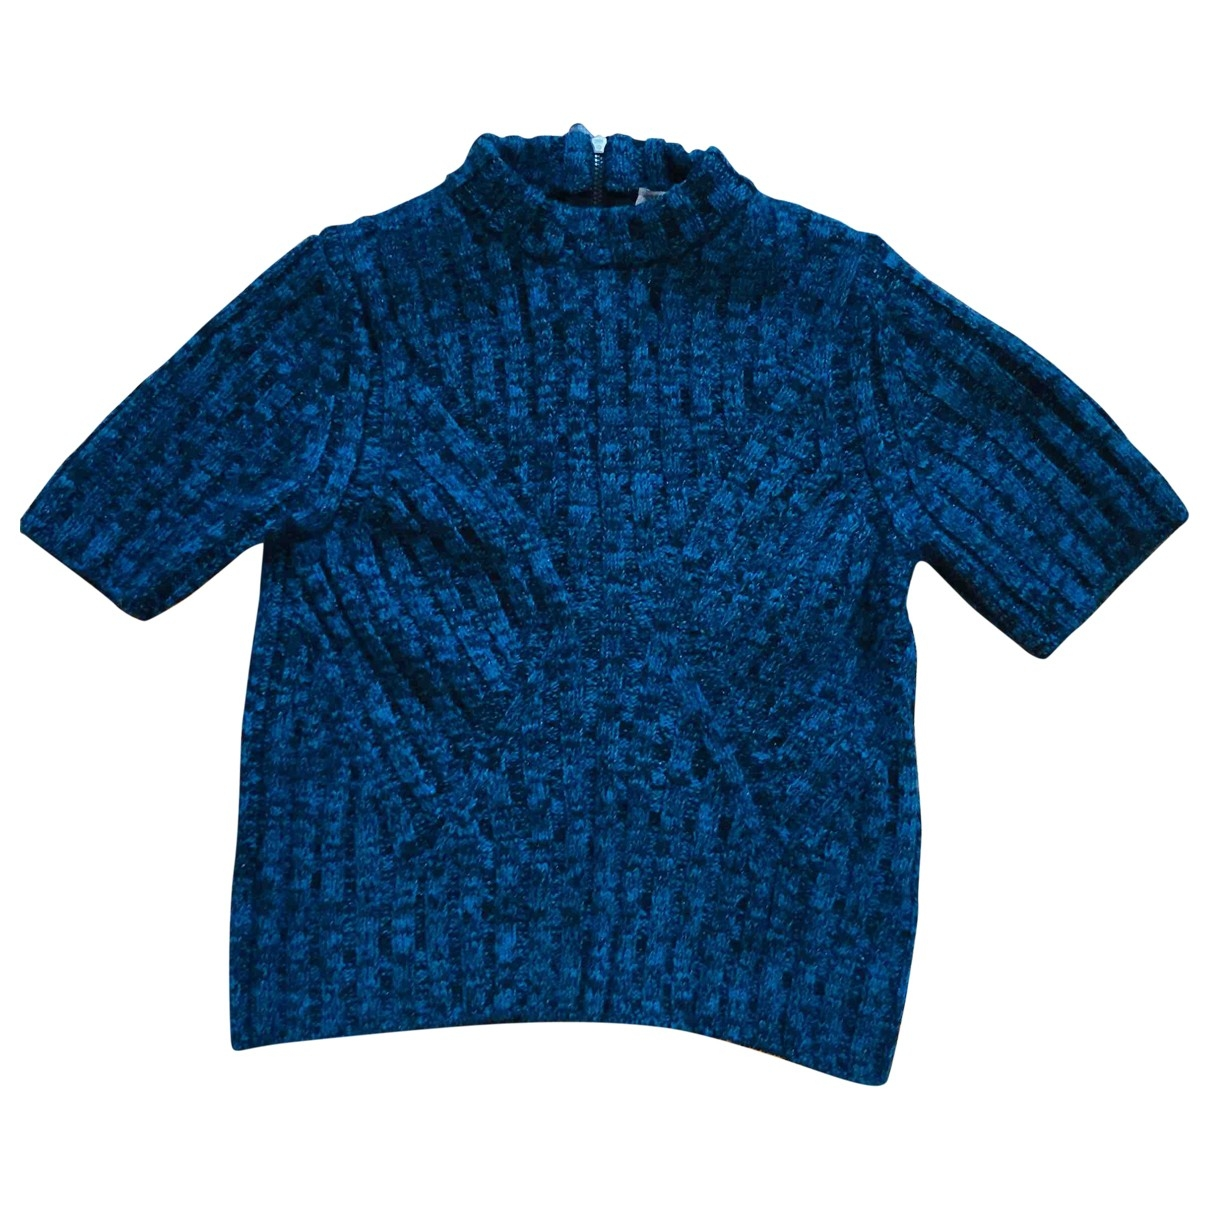 Bottega Veneta \N Top in  Blau Wolle